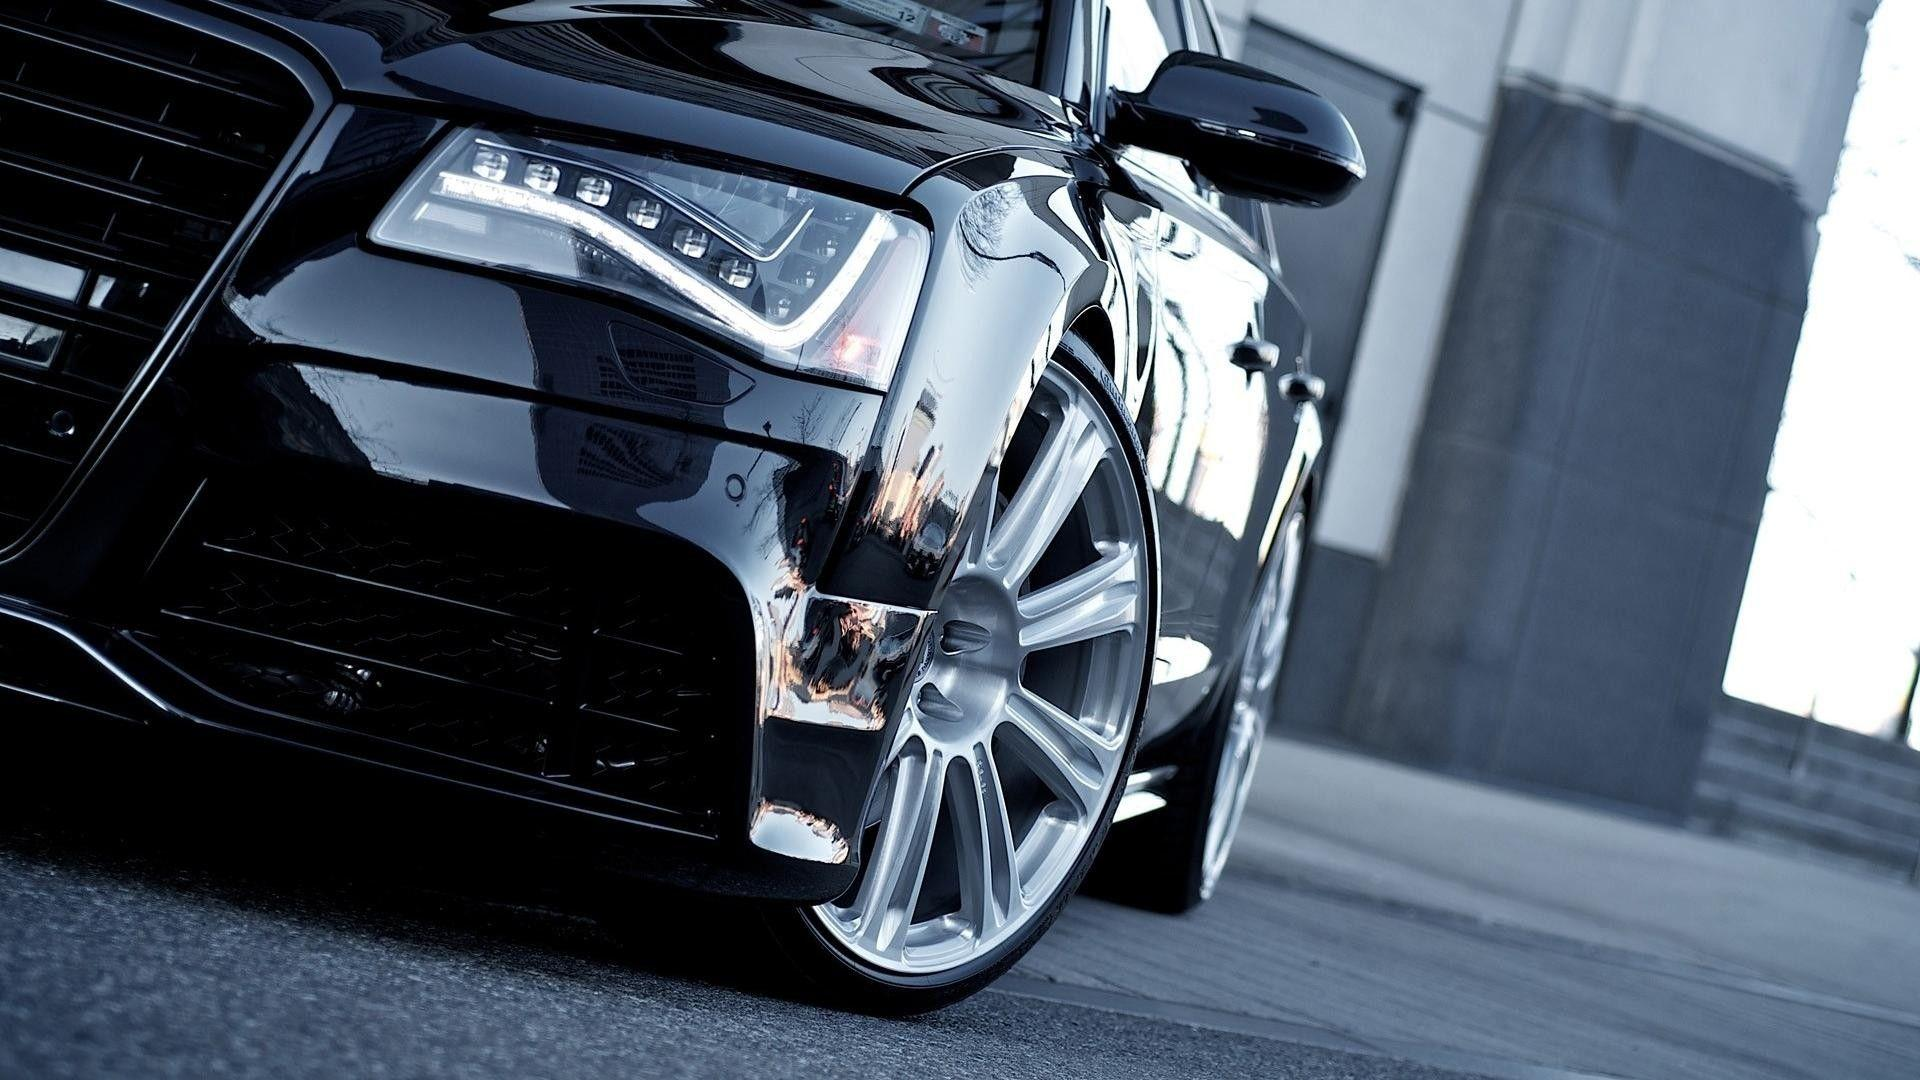 Cool HD Audi Wallpapers For Free Download 2560×1440 Audi Wallpaper ...